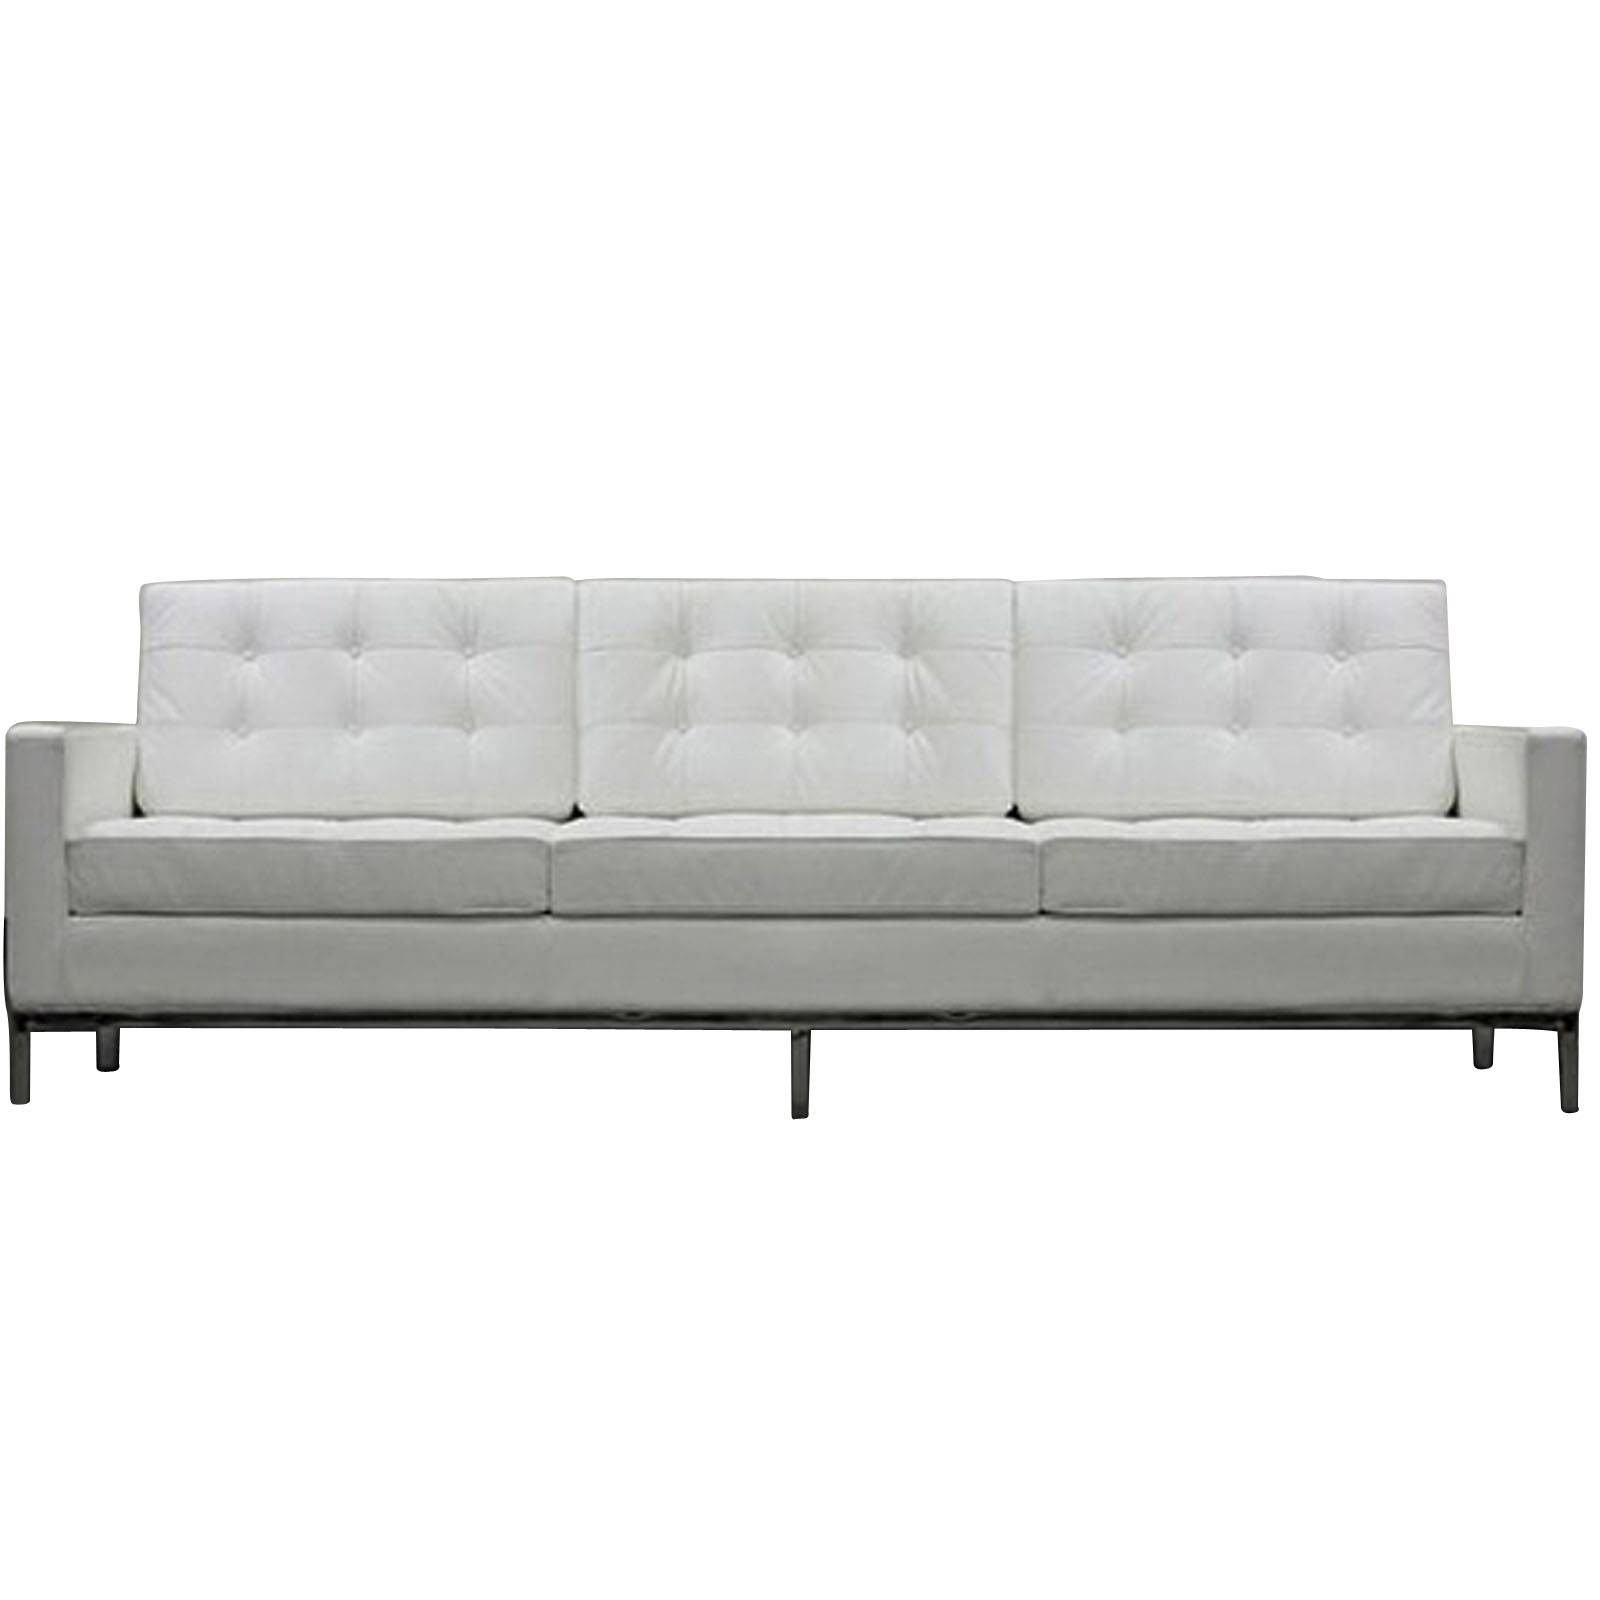 Florence Knoll Style Sofa Couch - Leather with regard to Florence Knoll Leather Sofas (Image 13 of 25)